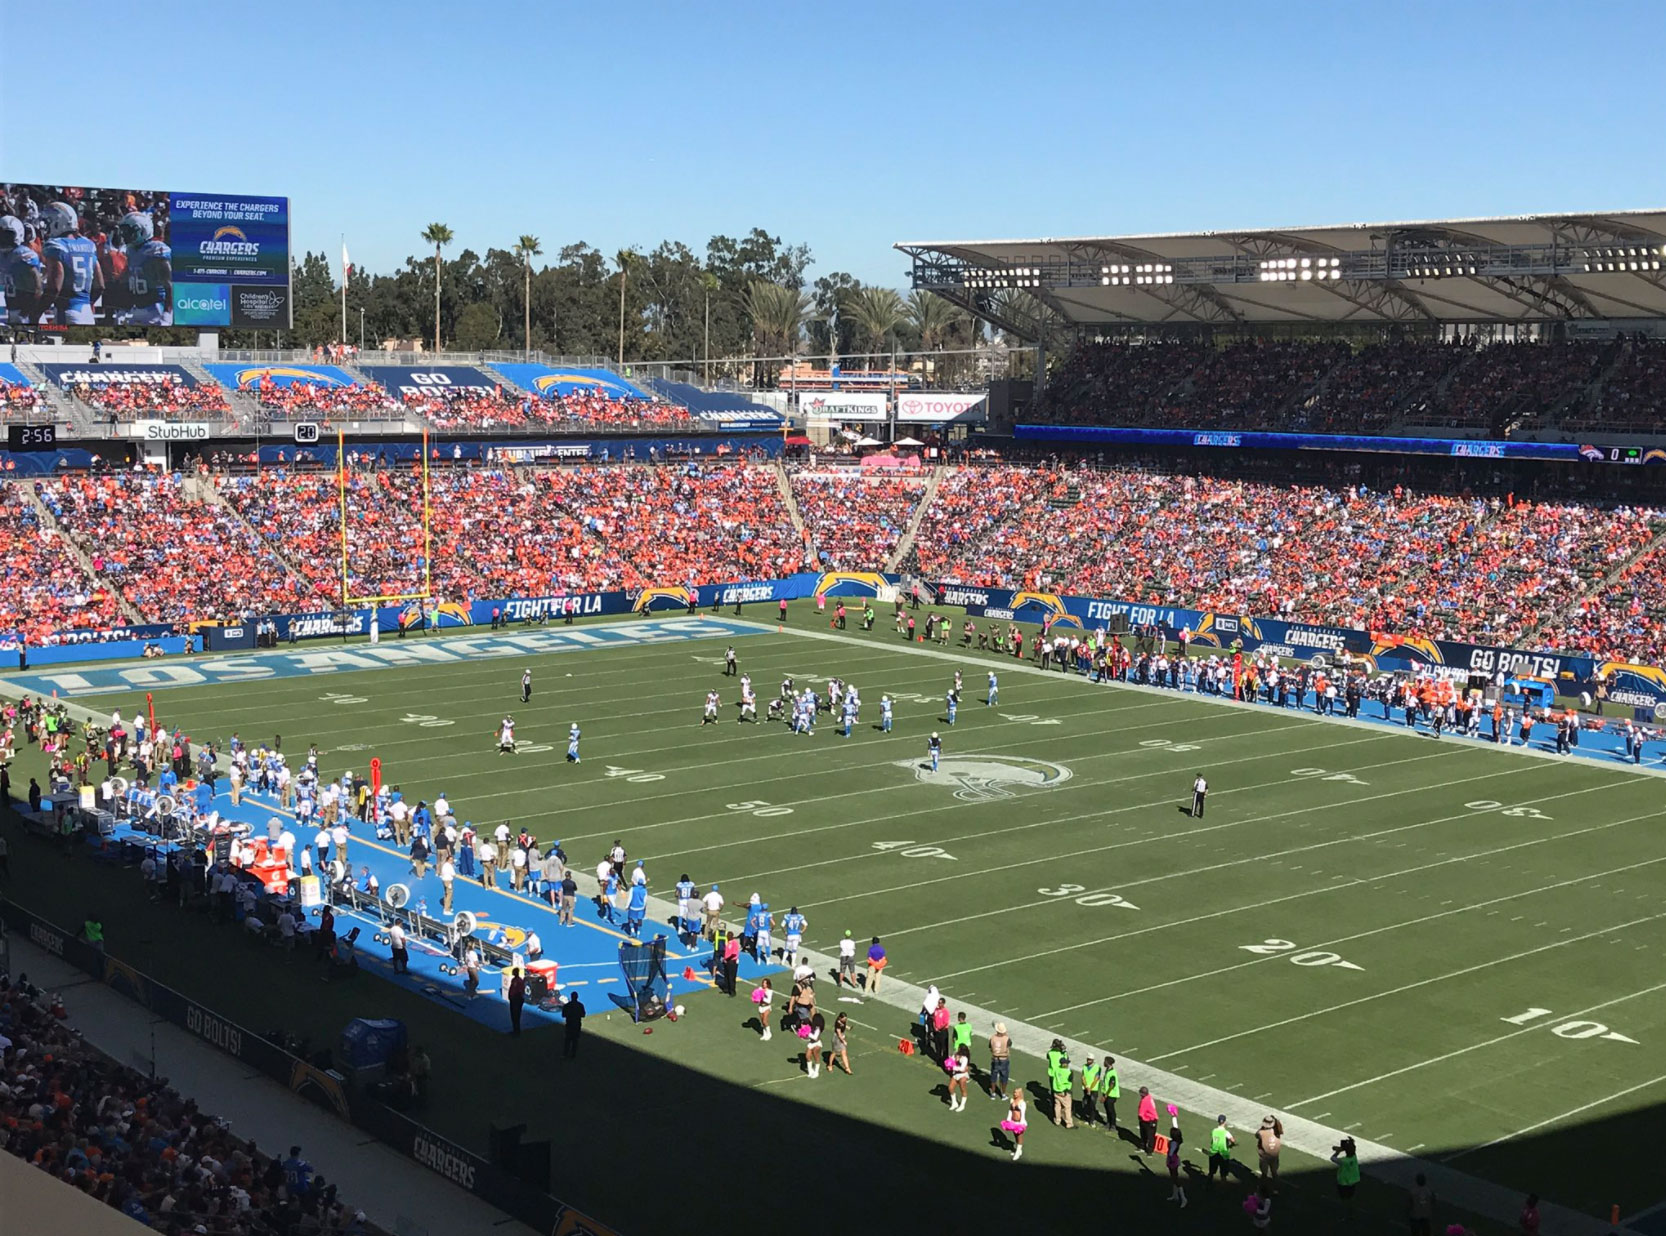 Yet Another Chargers Home Game Has Been Turned Into An